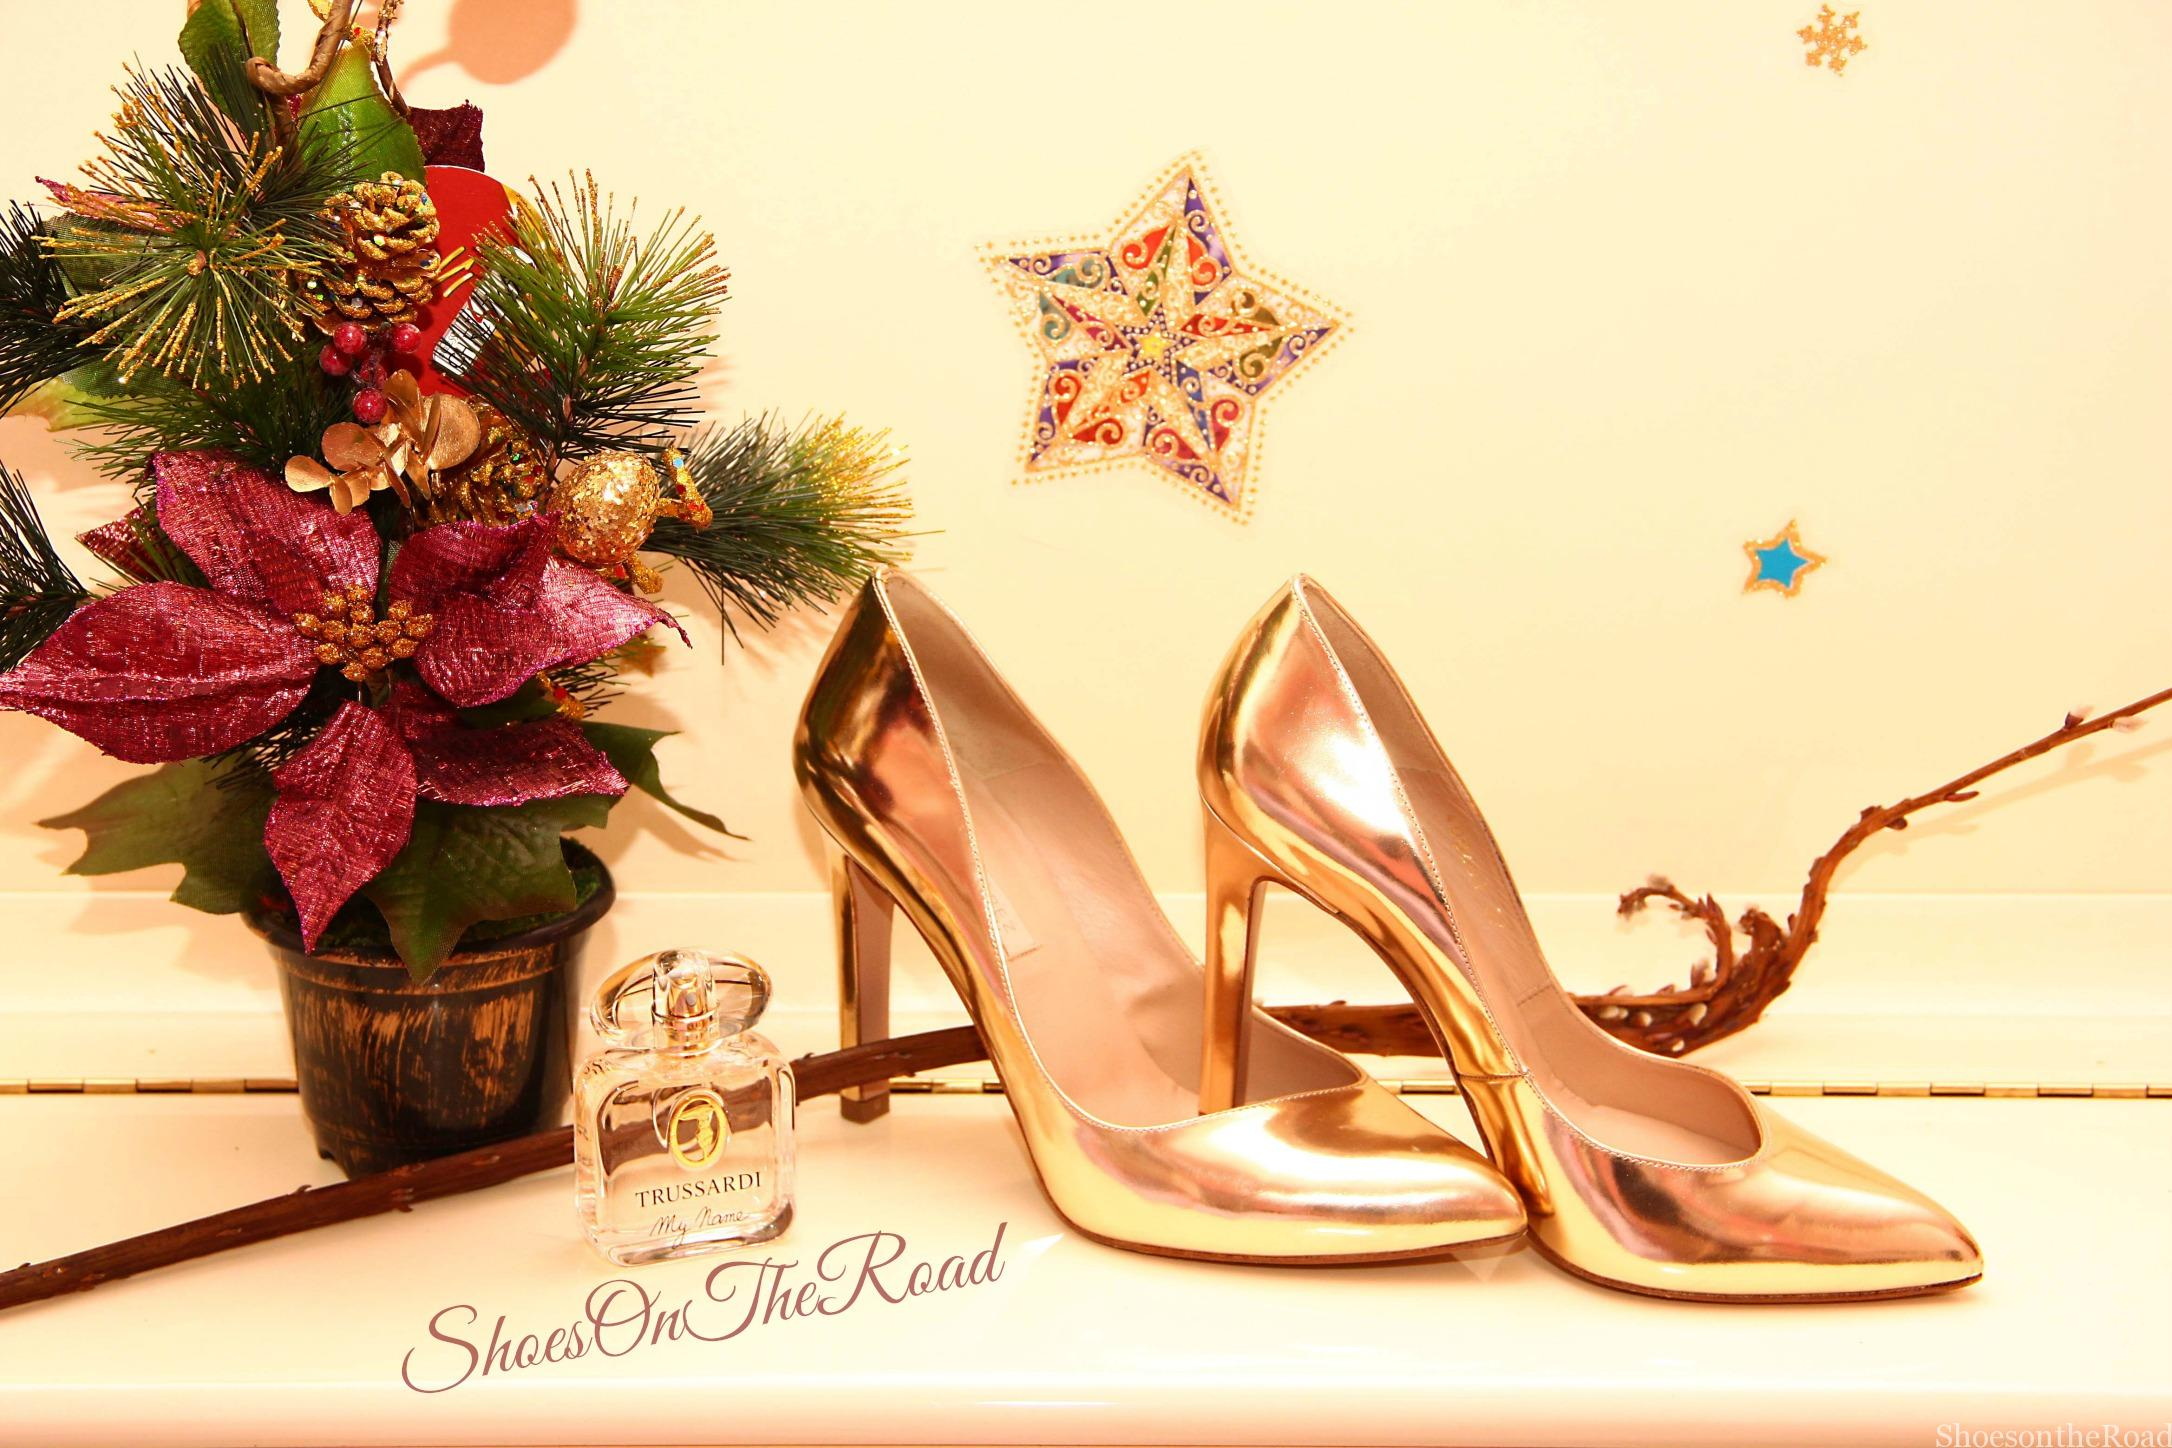 Pura_Lopez_Shoesontheroad_gold